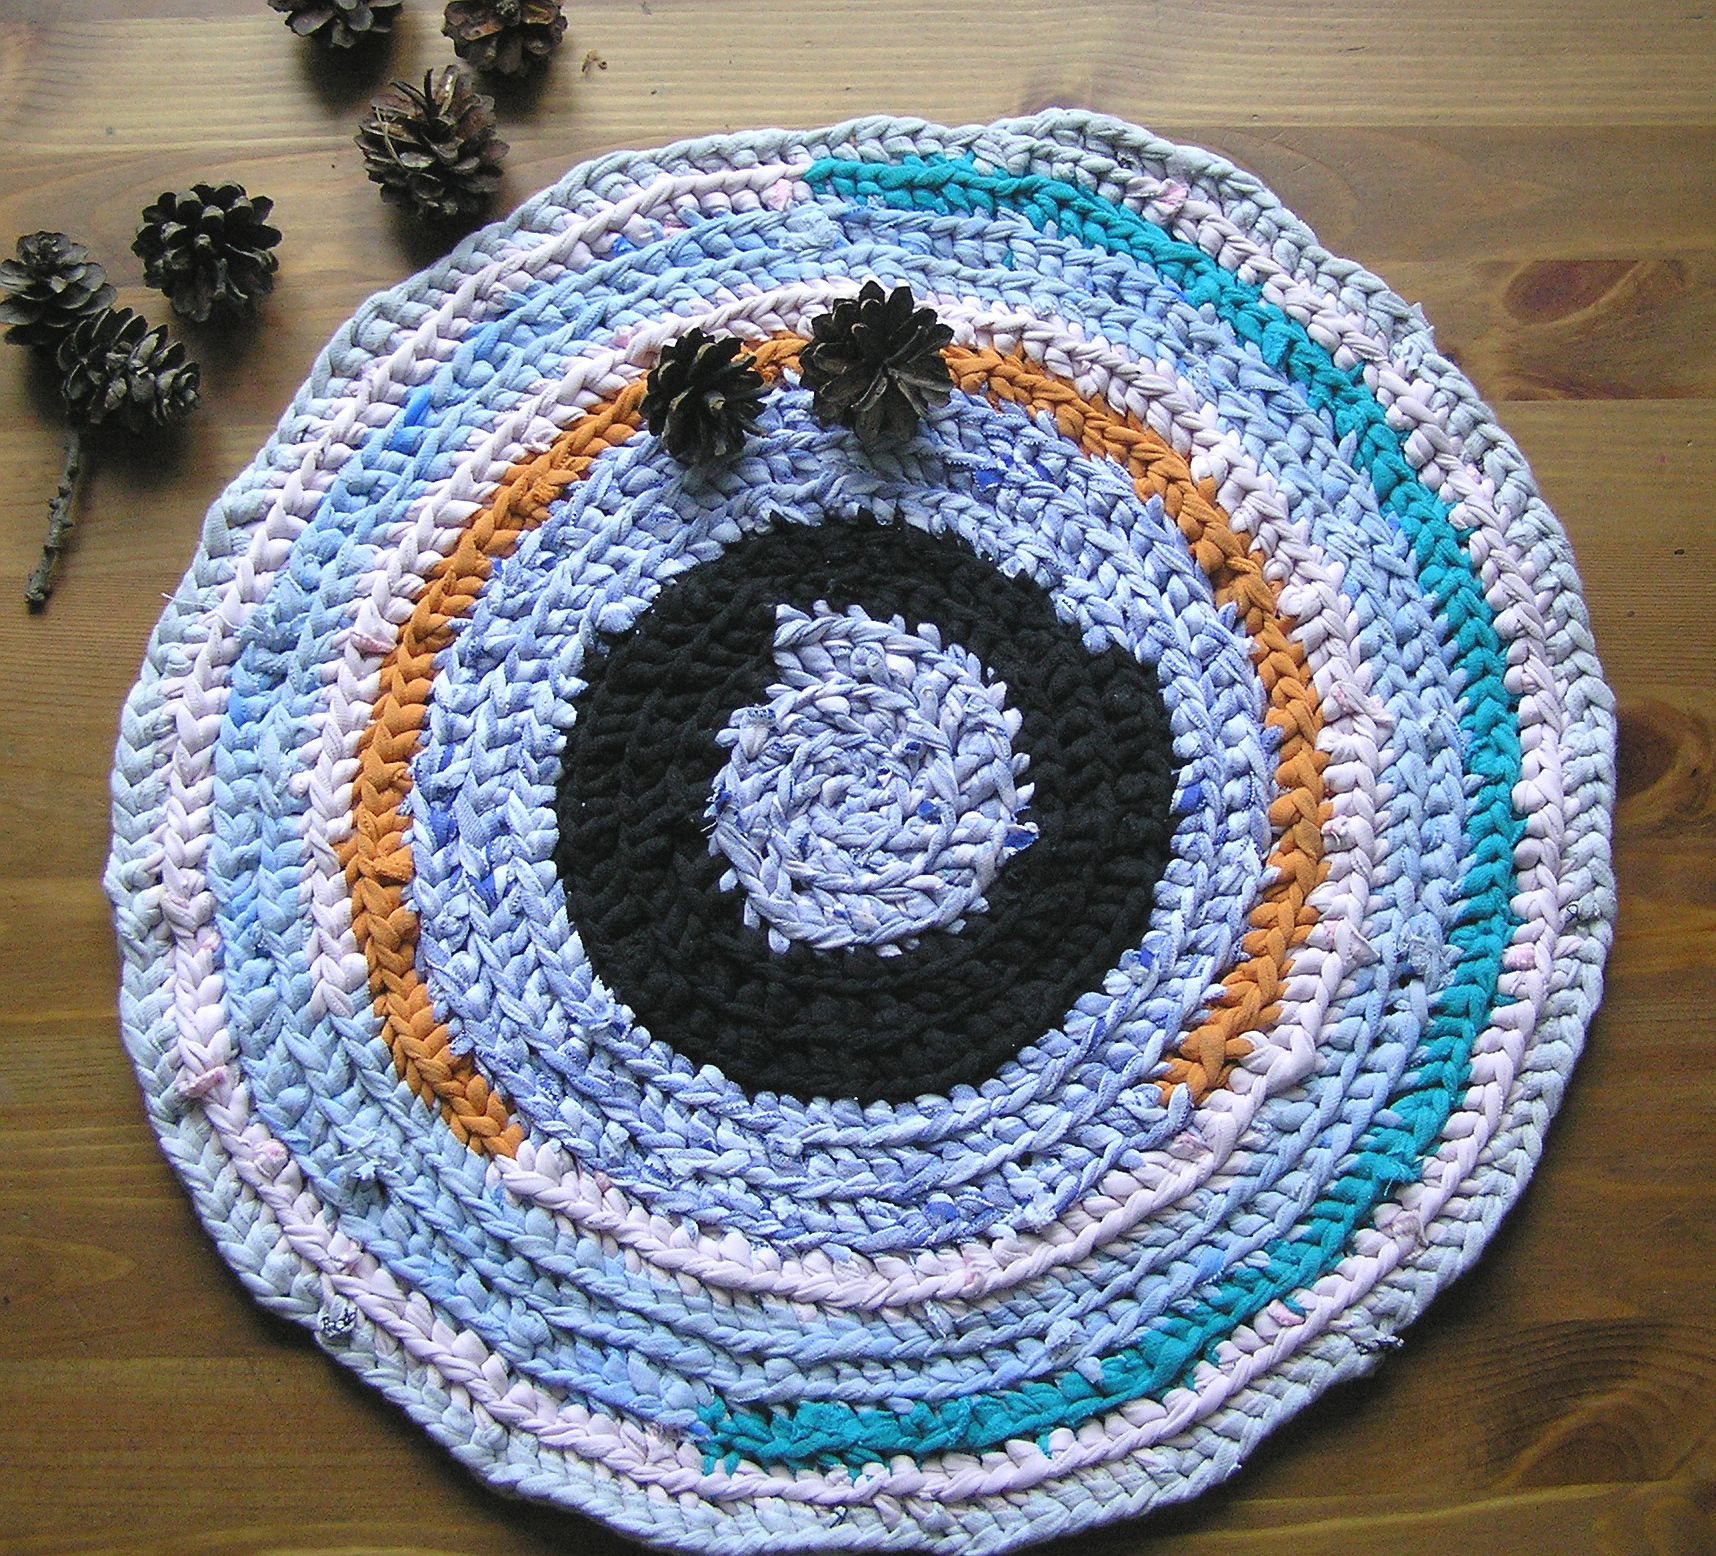 Blue Seat Mat Crochet Cats Bed Crochet Round Blue Play Mat, Small Rag Rug,  Multicoloured Multicolored Small Round Crochet Cat Cat Mat, Chair Seat Pad,  ...